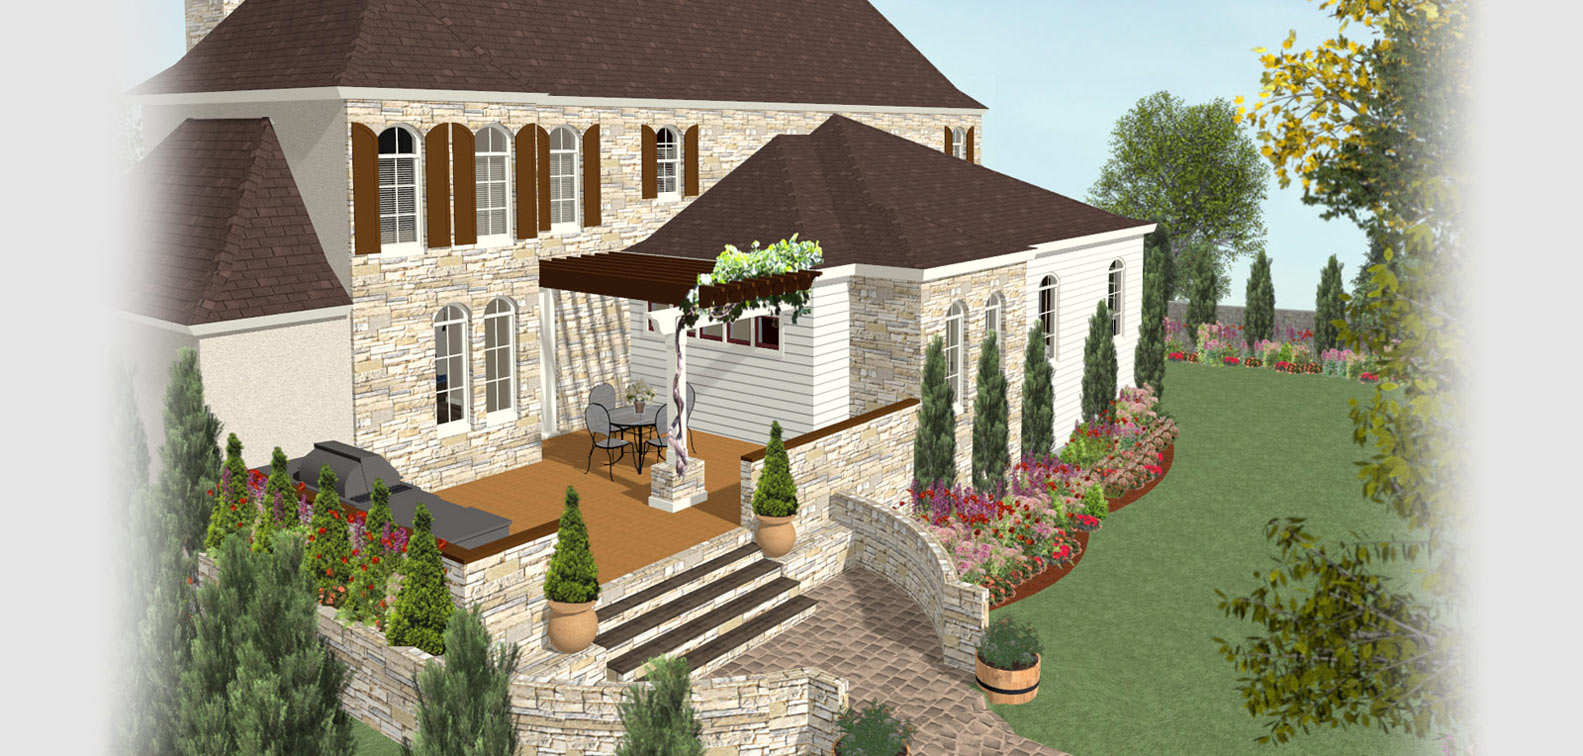 - Home Designer Software For Deck And Landscape Software Projects